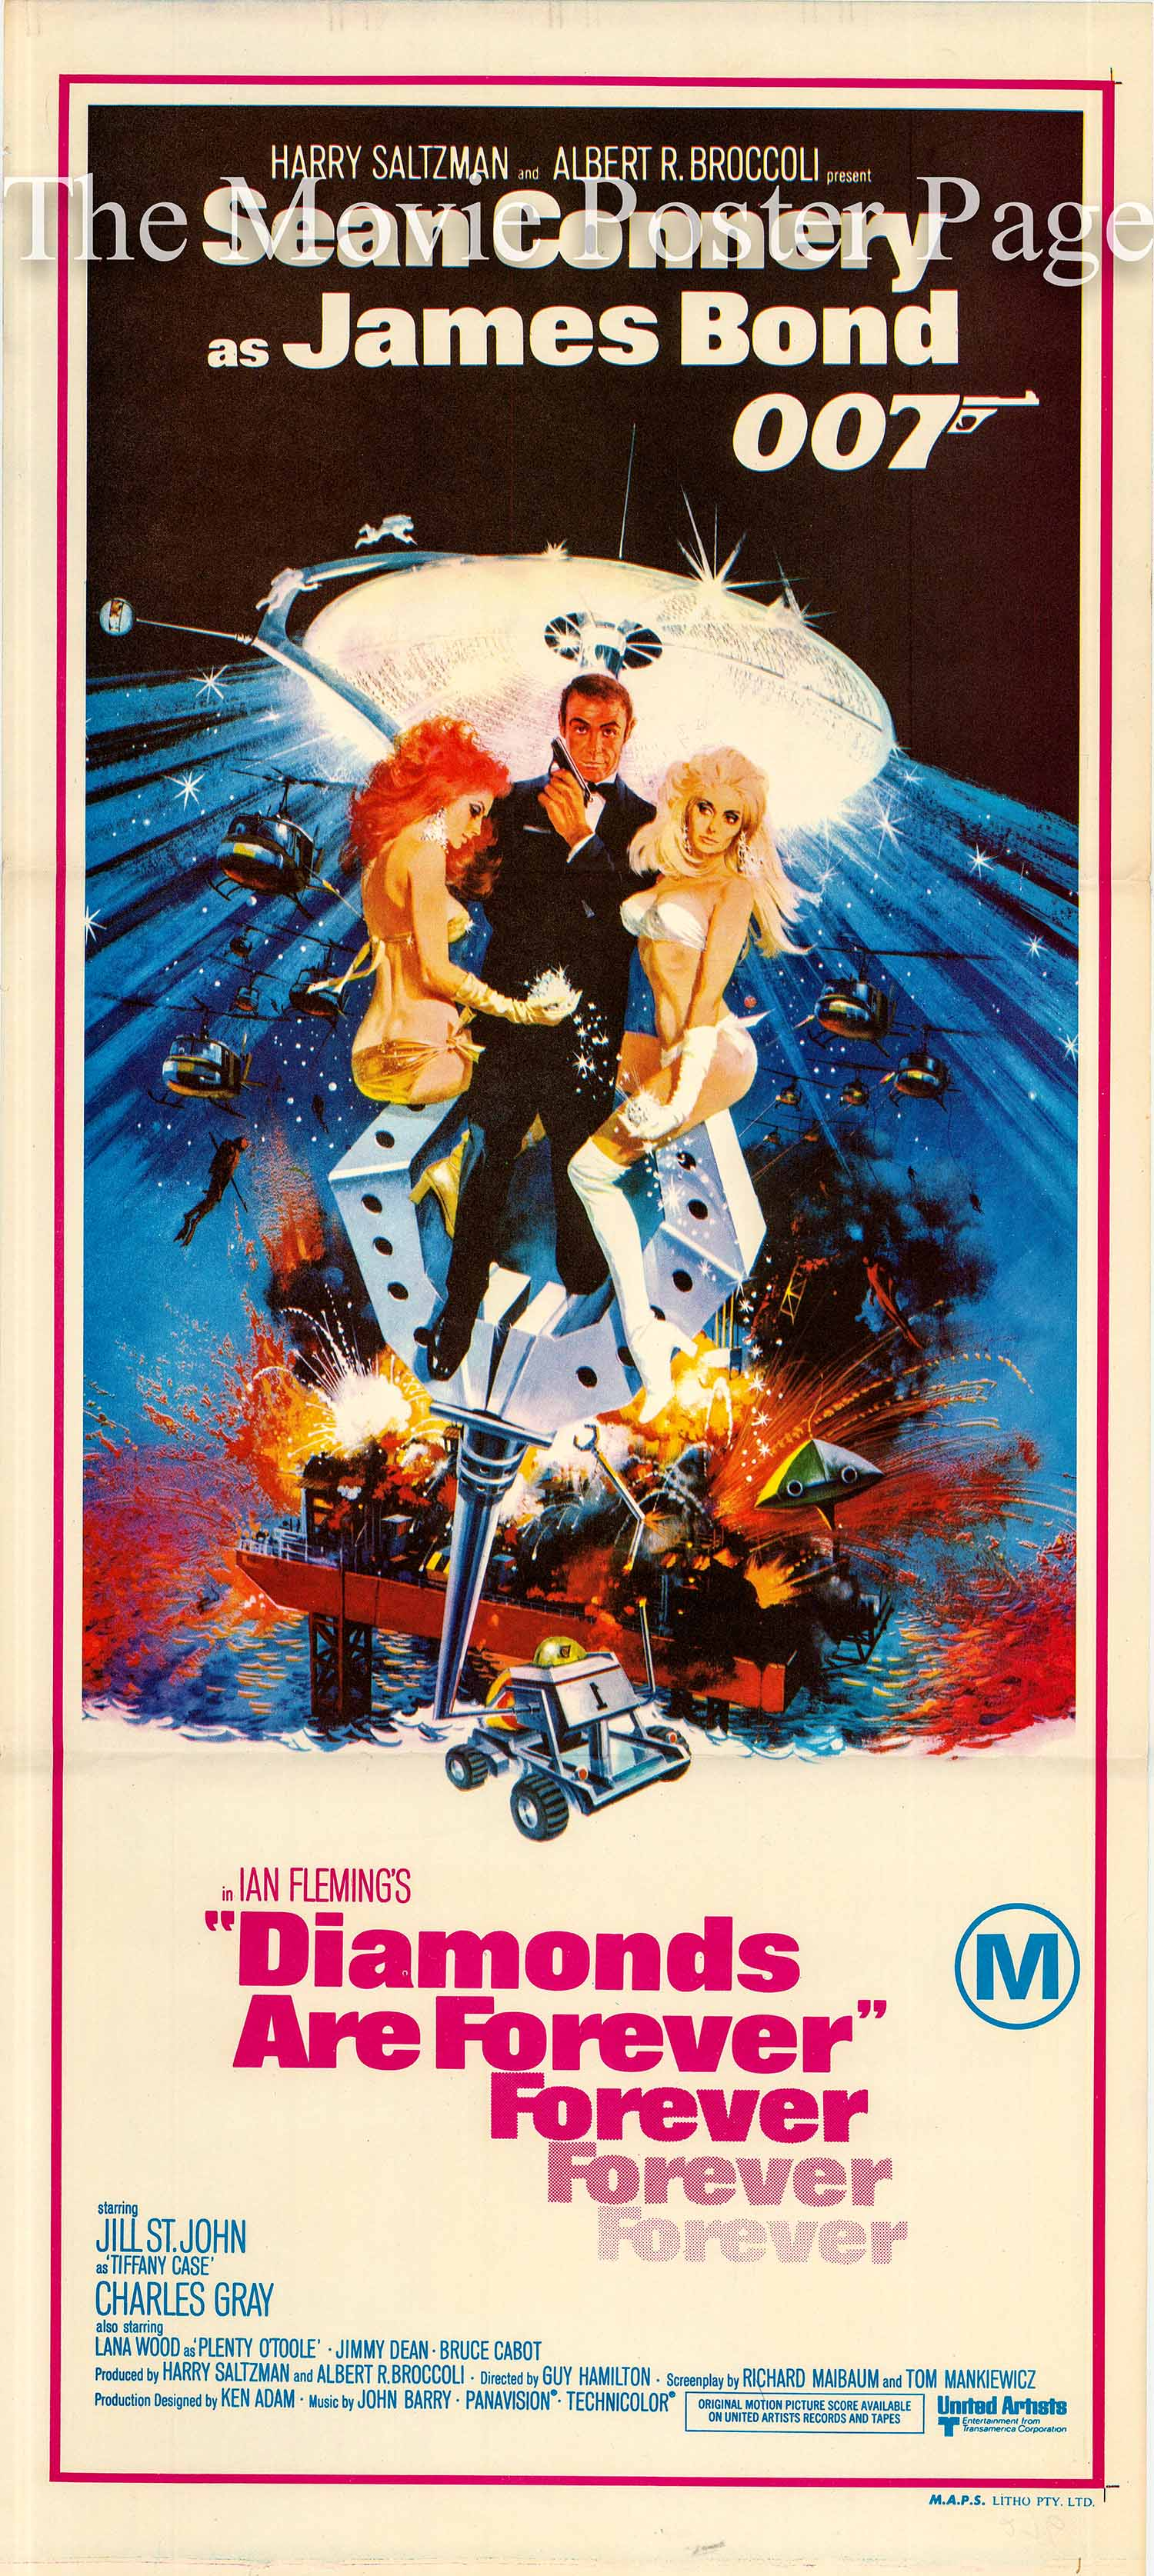 Pictured is an Australian daybill promotional poster for the 1971 Guy Hamilton film Diamonds are Forever starring Sean Connery as James Bond.